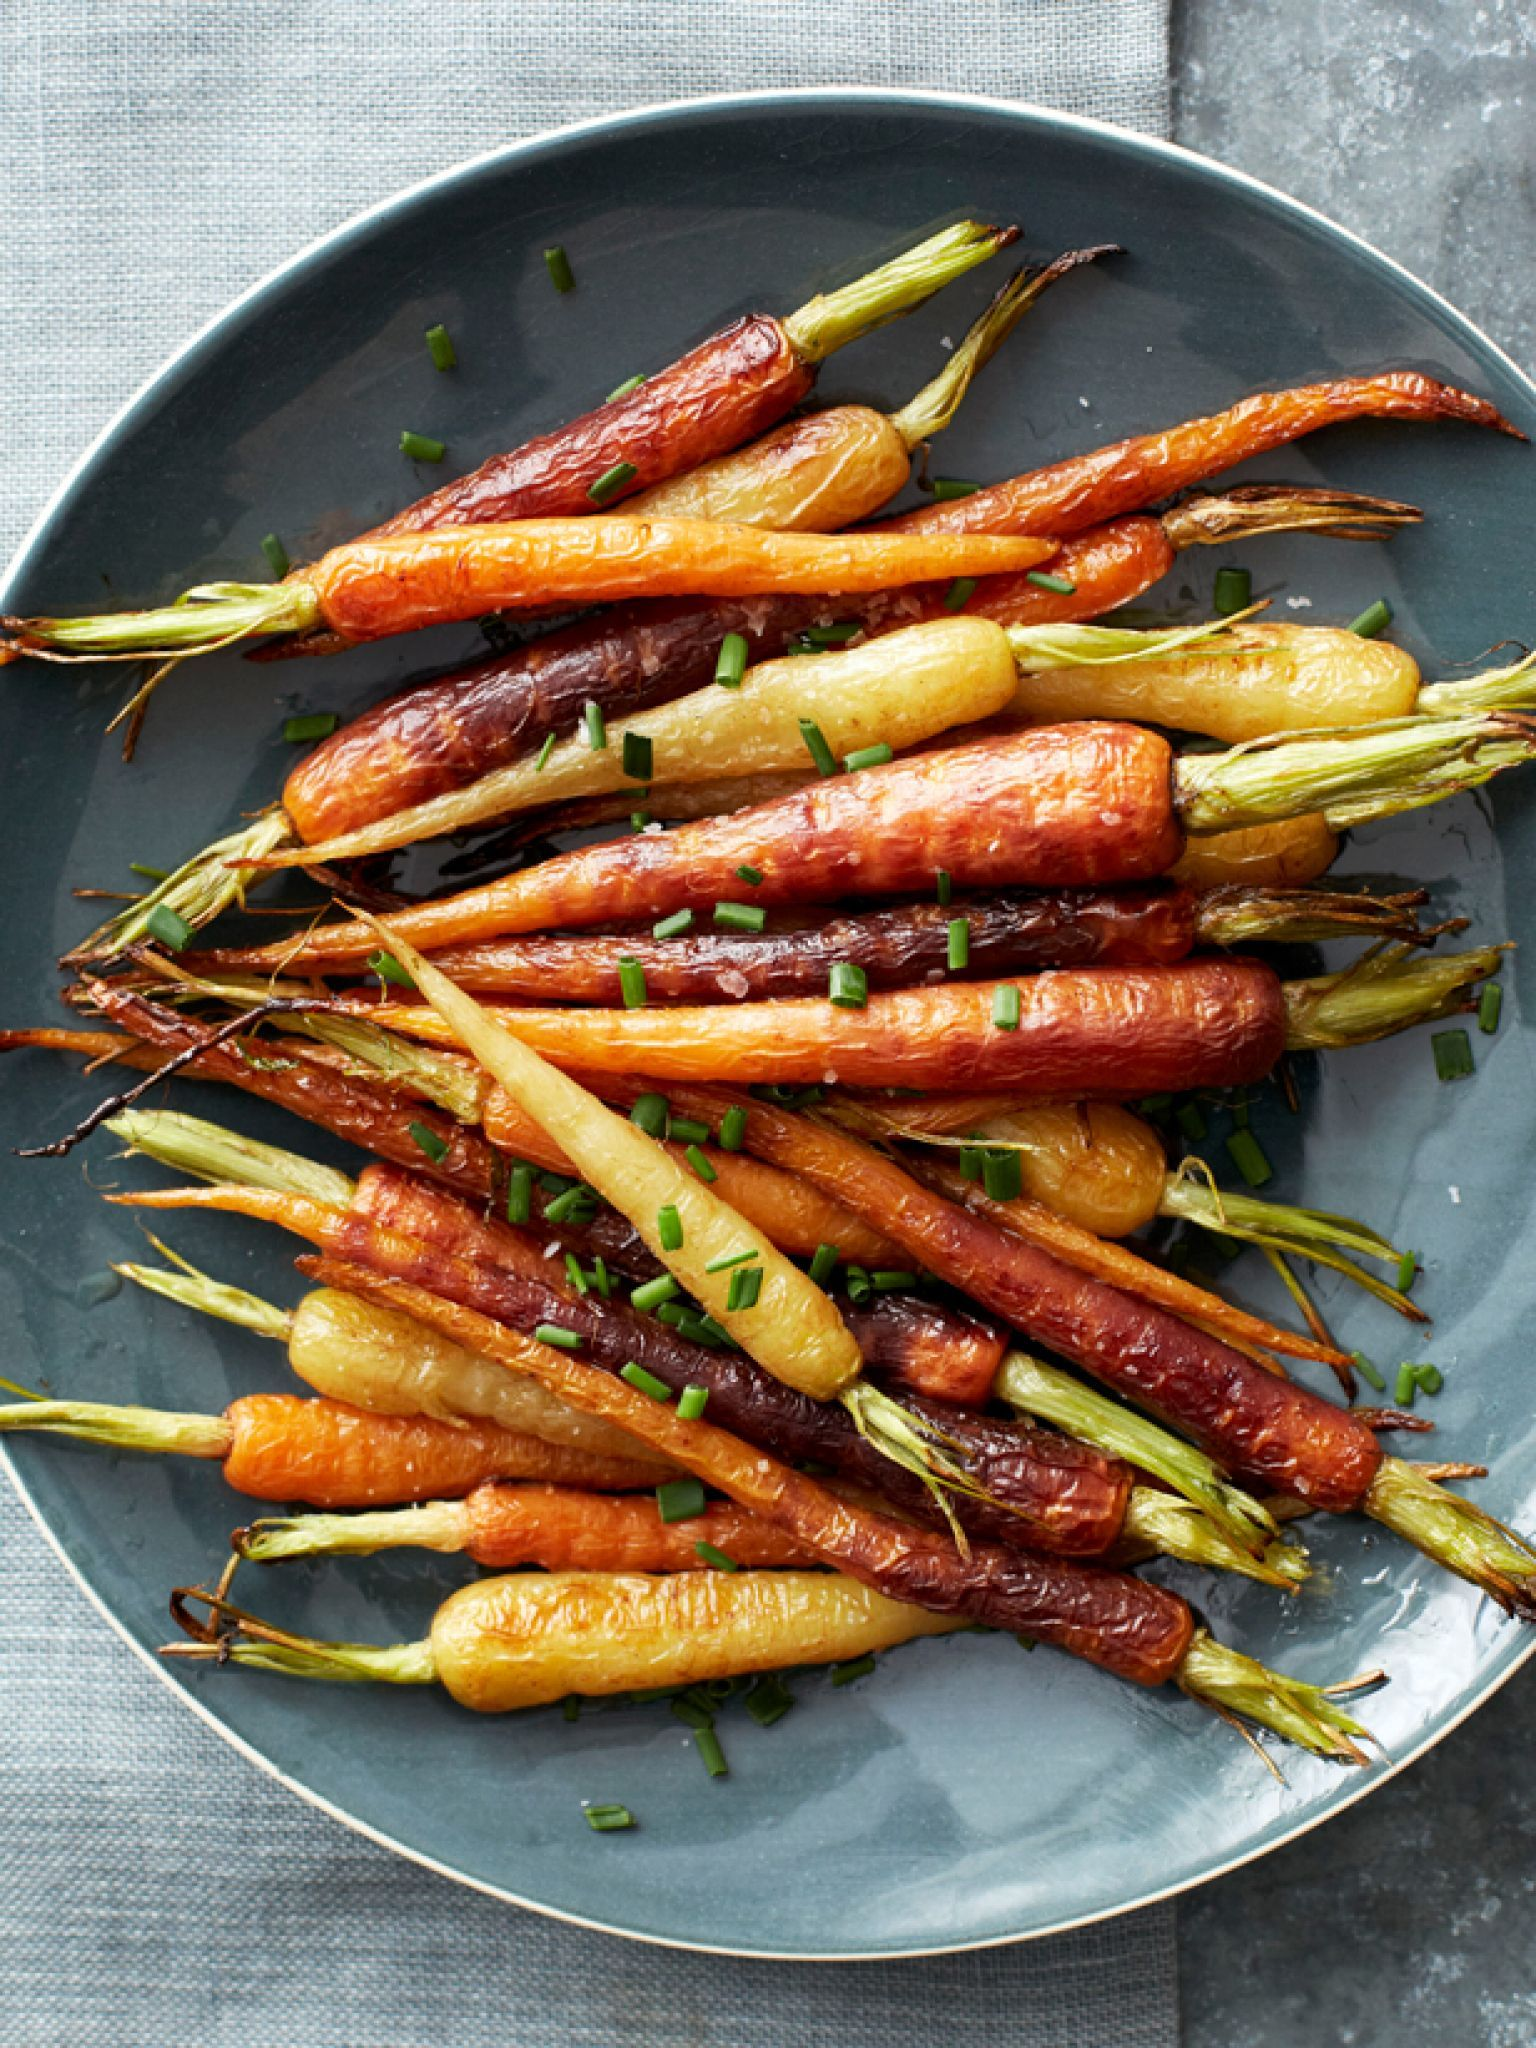 Roasted rainbow carrots recipe from food network kitchen via food roasted rainbow carrots recipe from food network kitchen via food network easter side disheseaster recipesveggie forumfinder Images